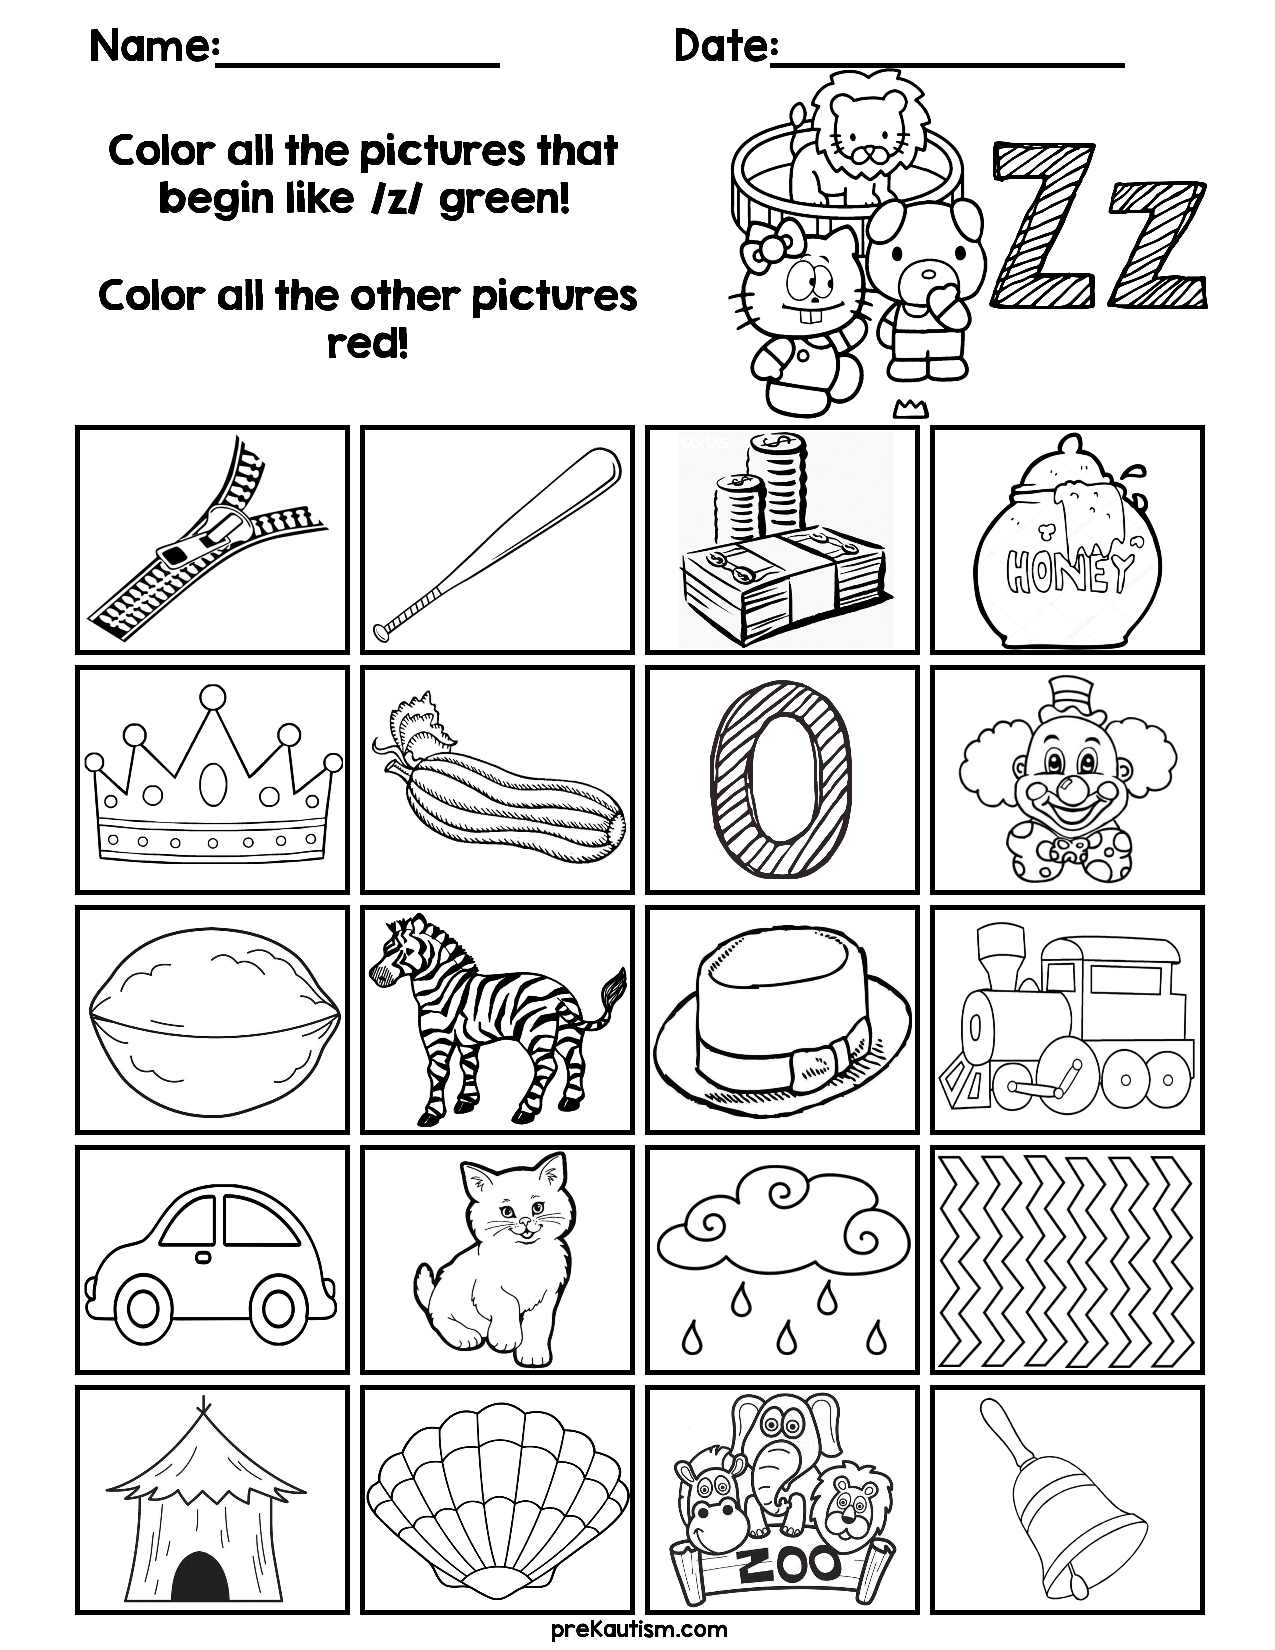 Find & Color Consonants Worksheets